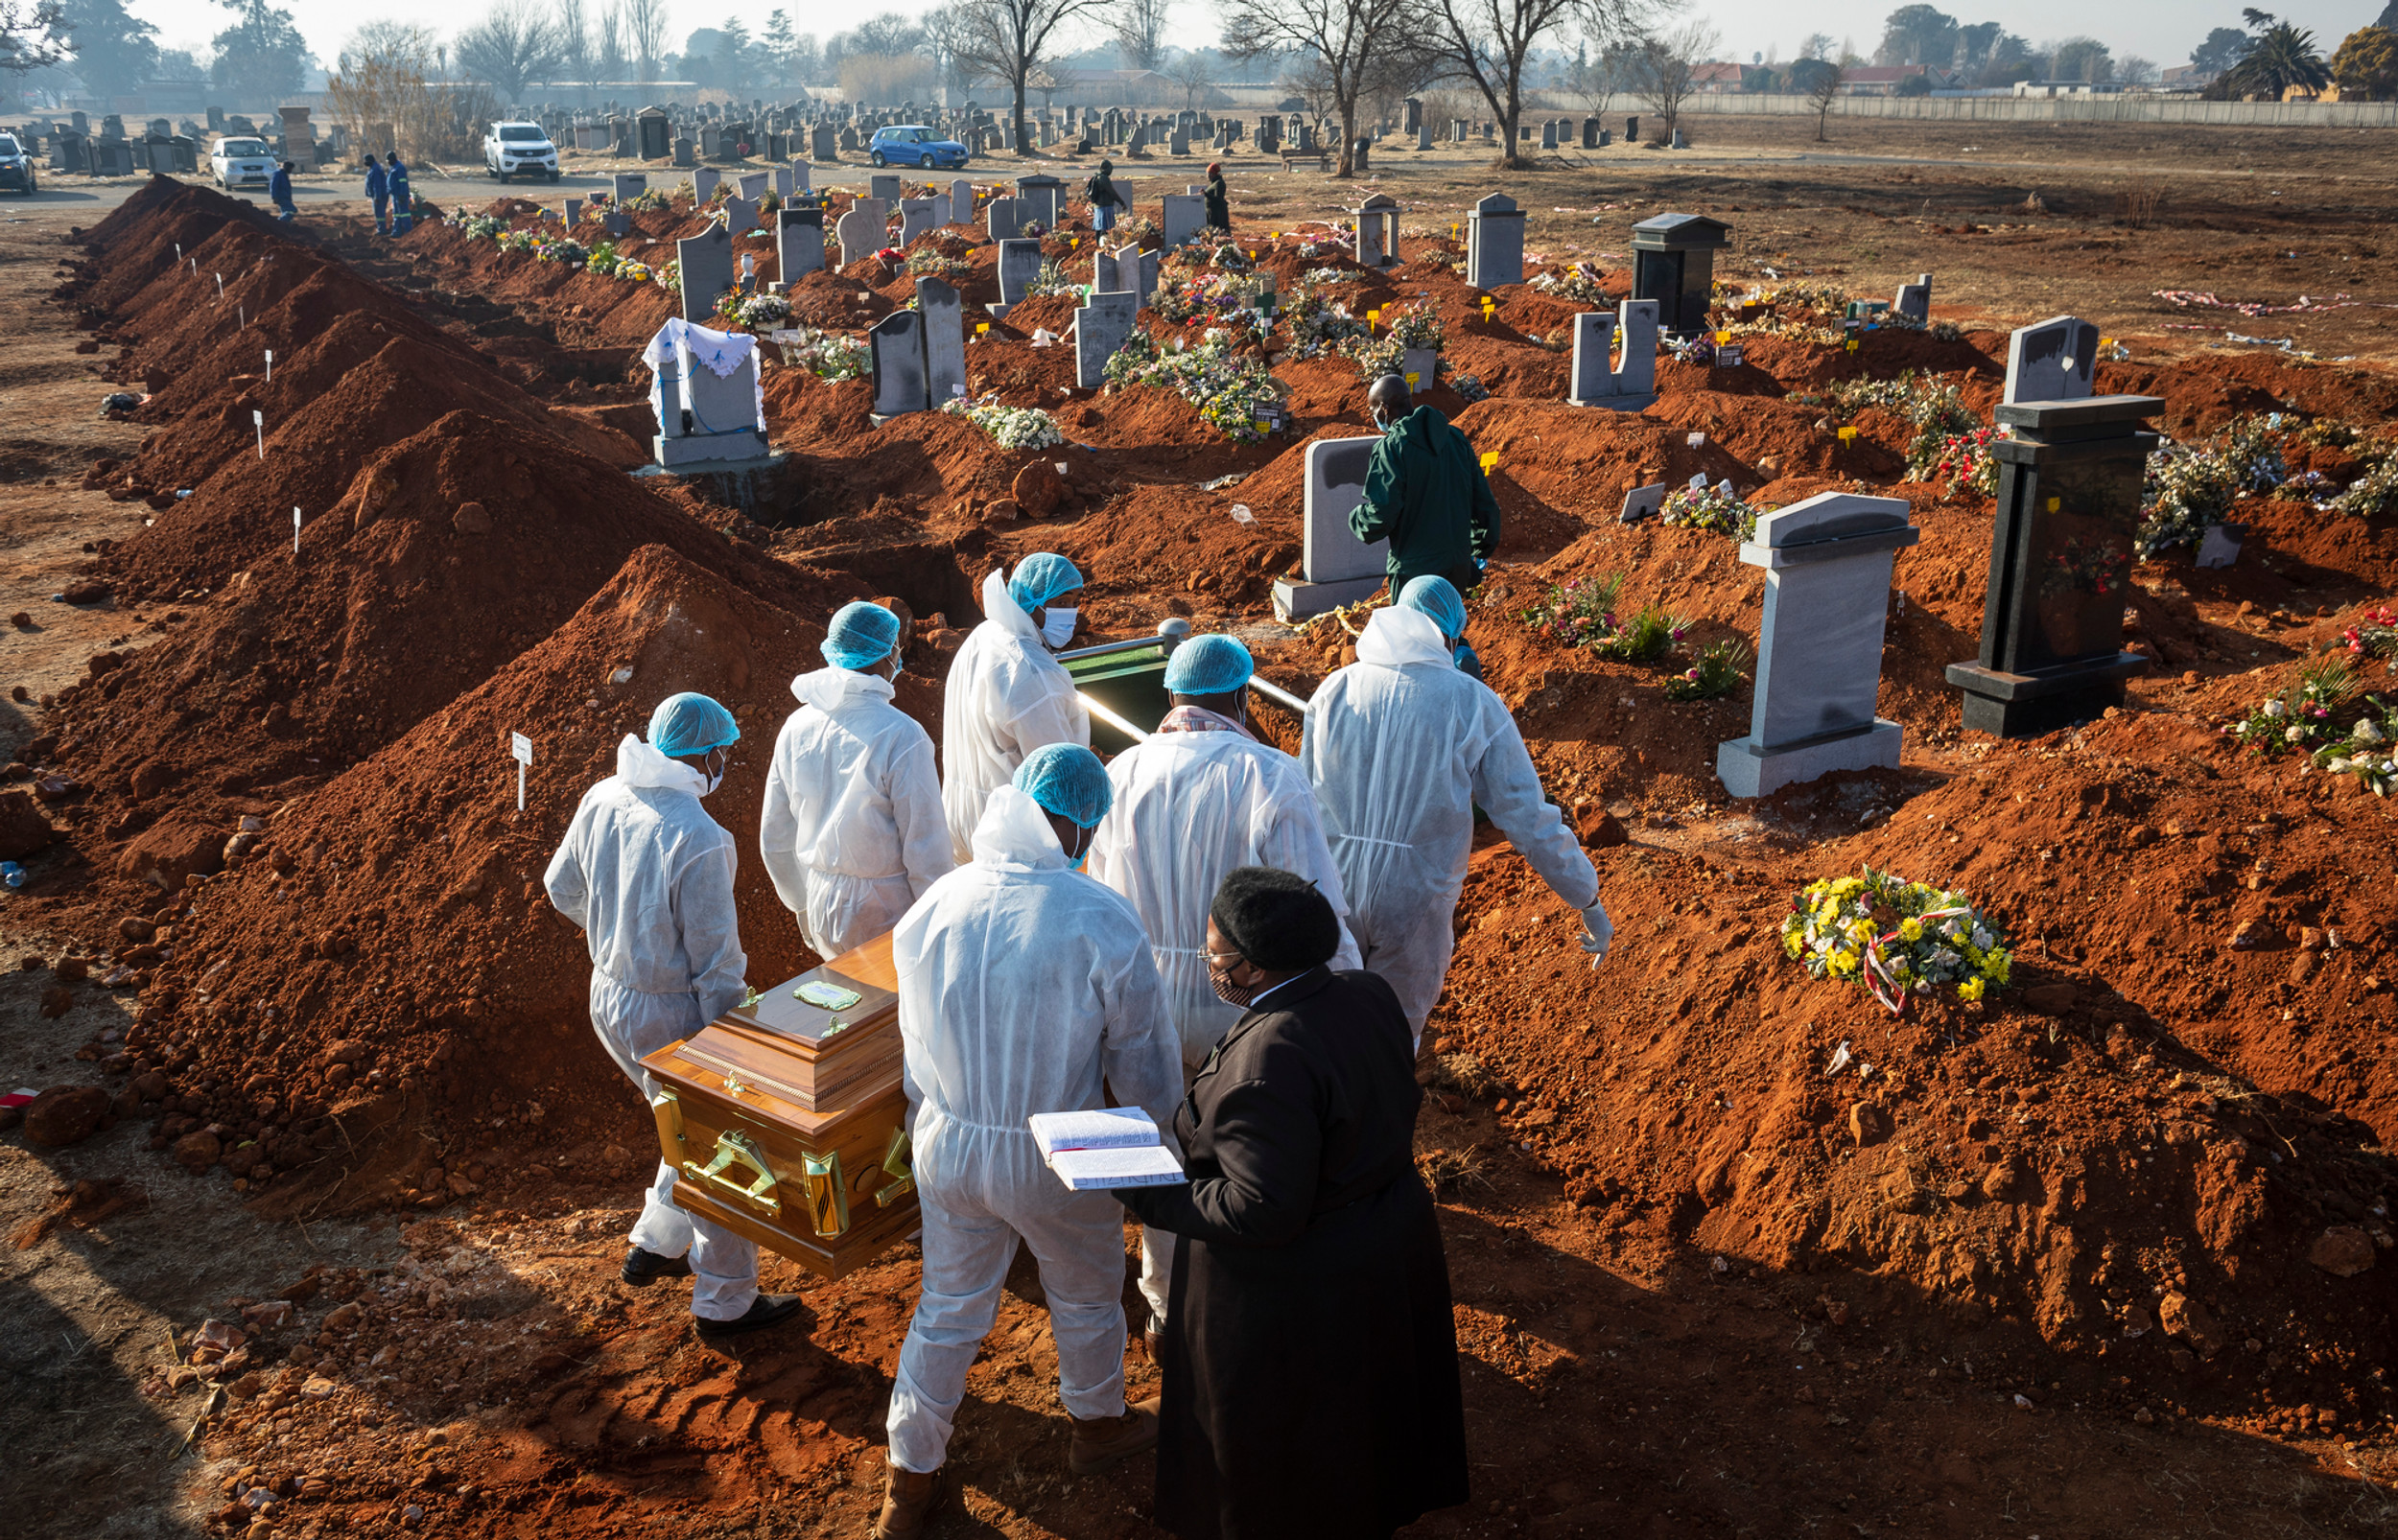 Pandemic funeral, South Africa.